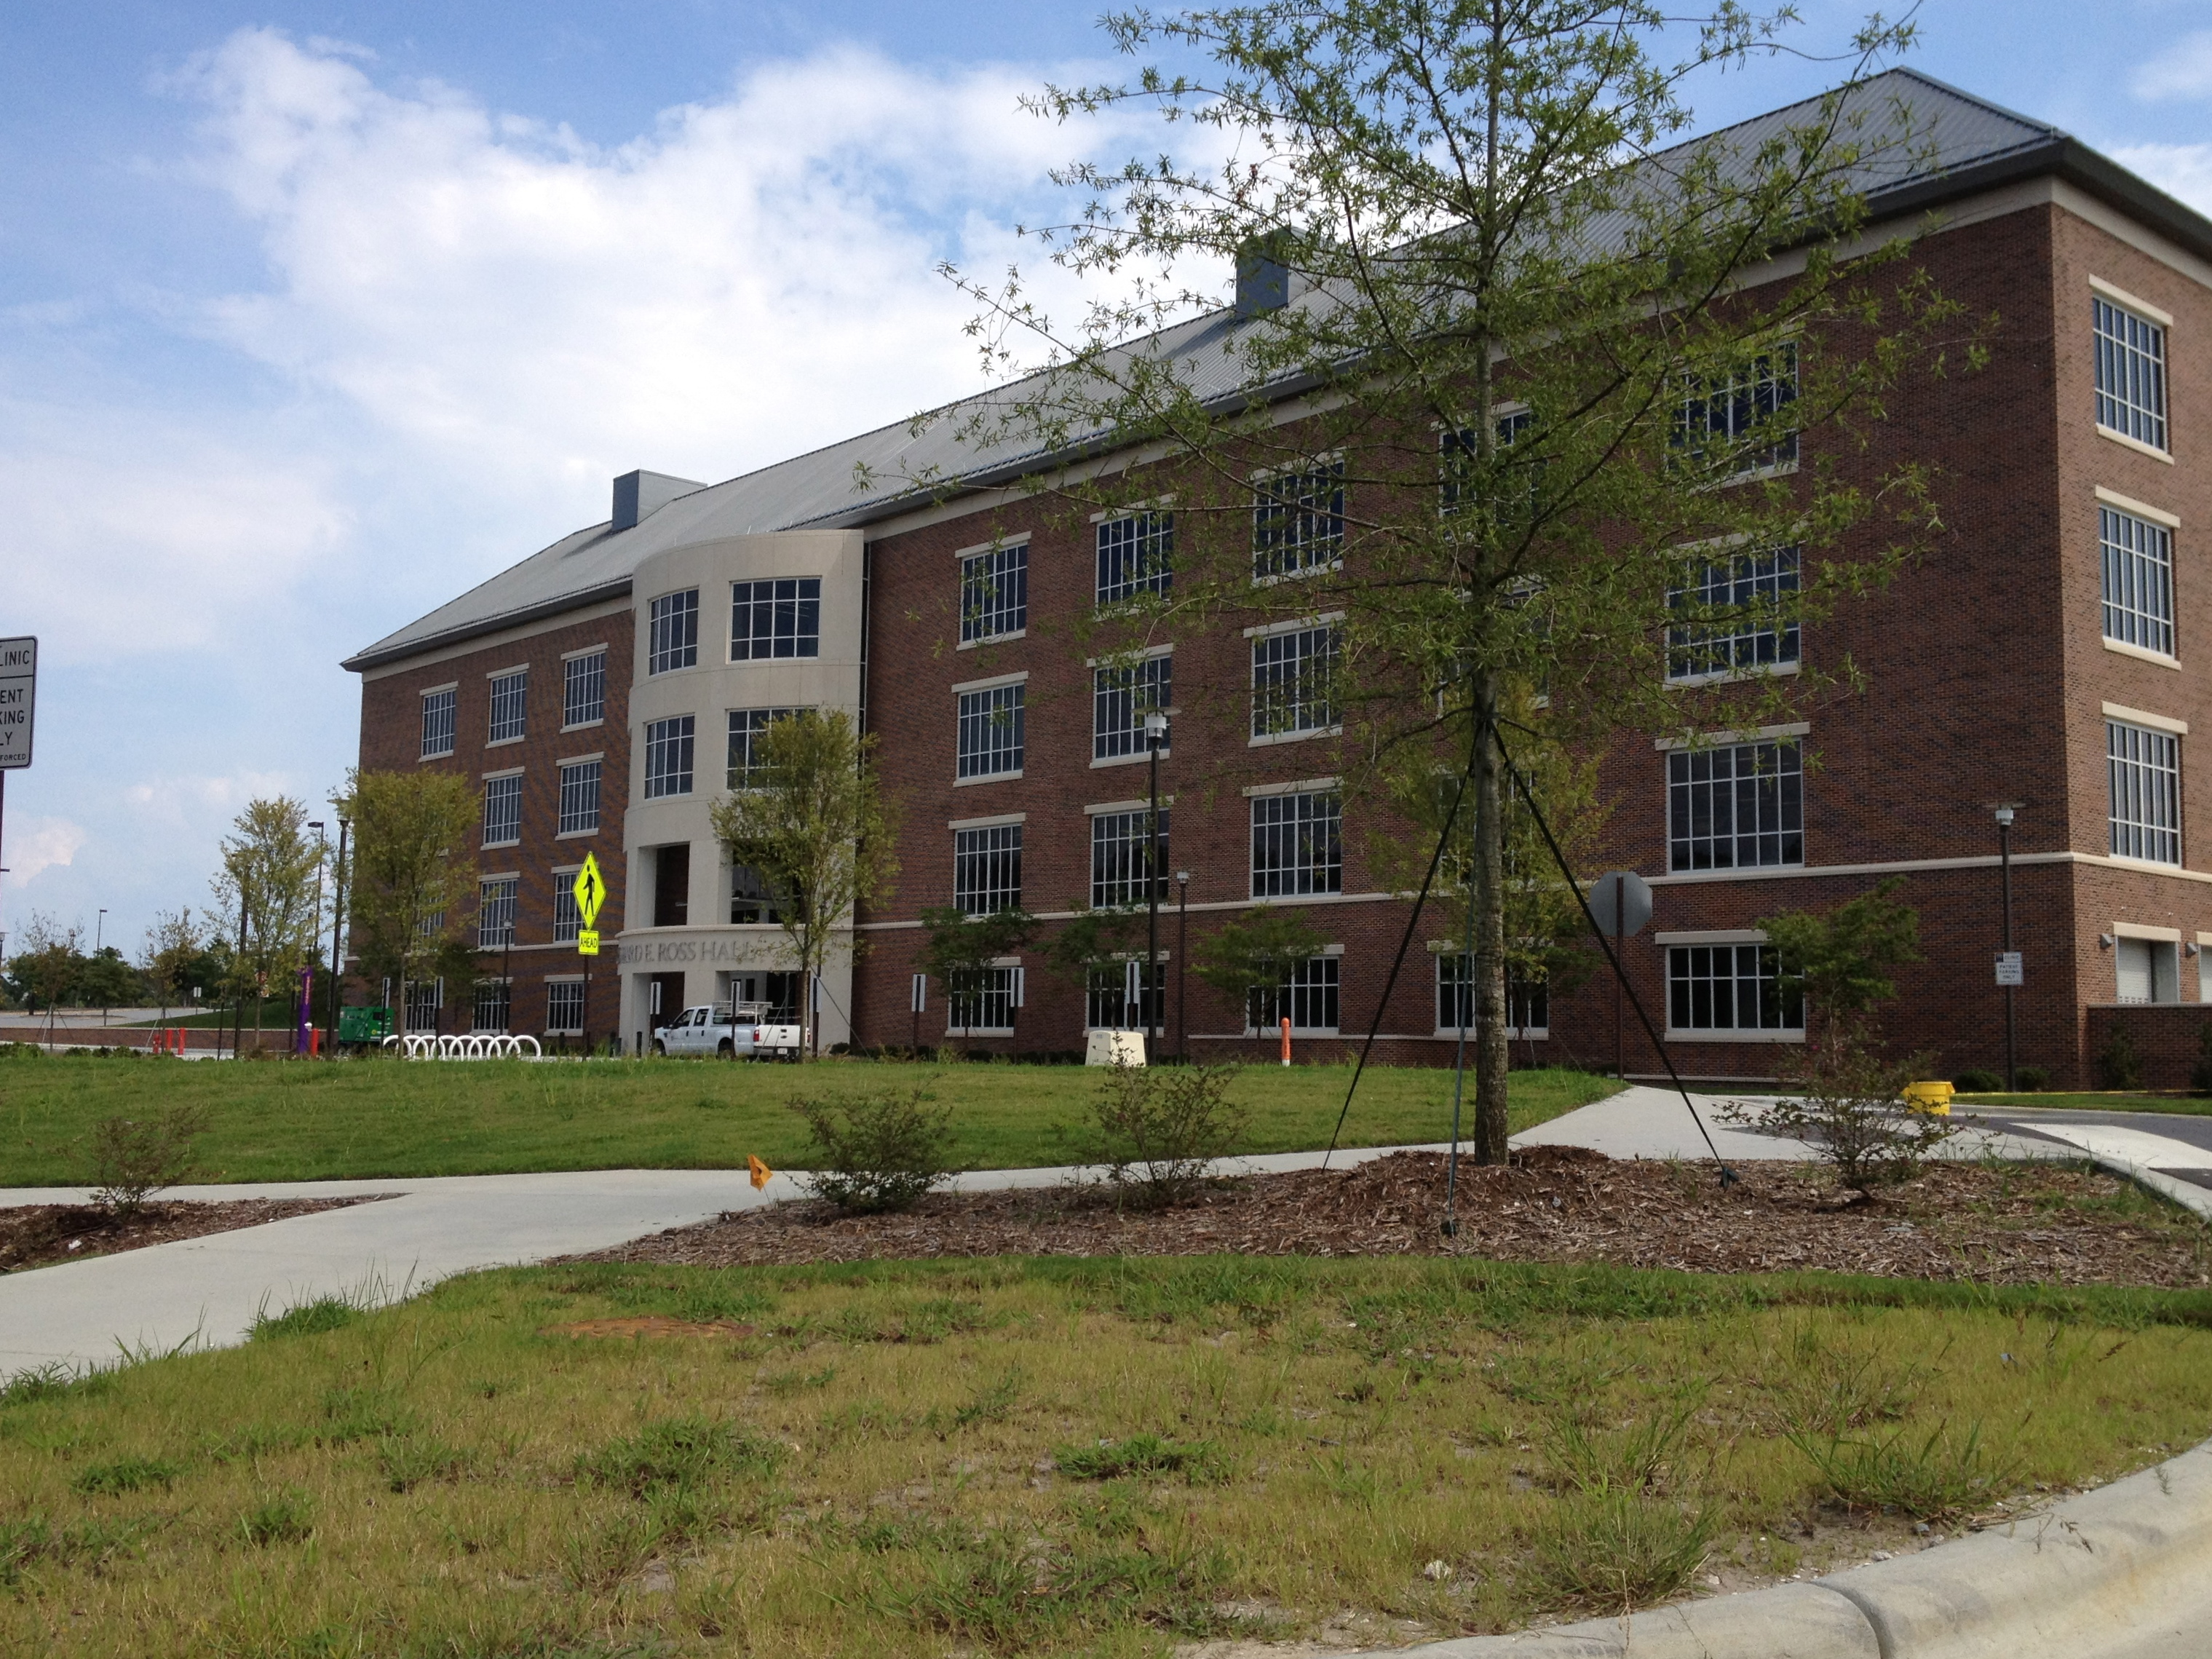 creative writing colleges in north carolina North carolina's largest creative writing school, which is located in wilmington, is university of north carolina-wilmington in 2009, a reported 48 students graduated with a creative.